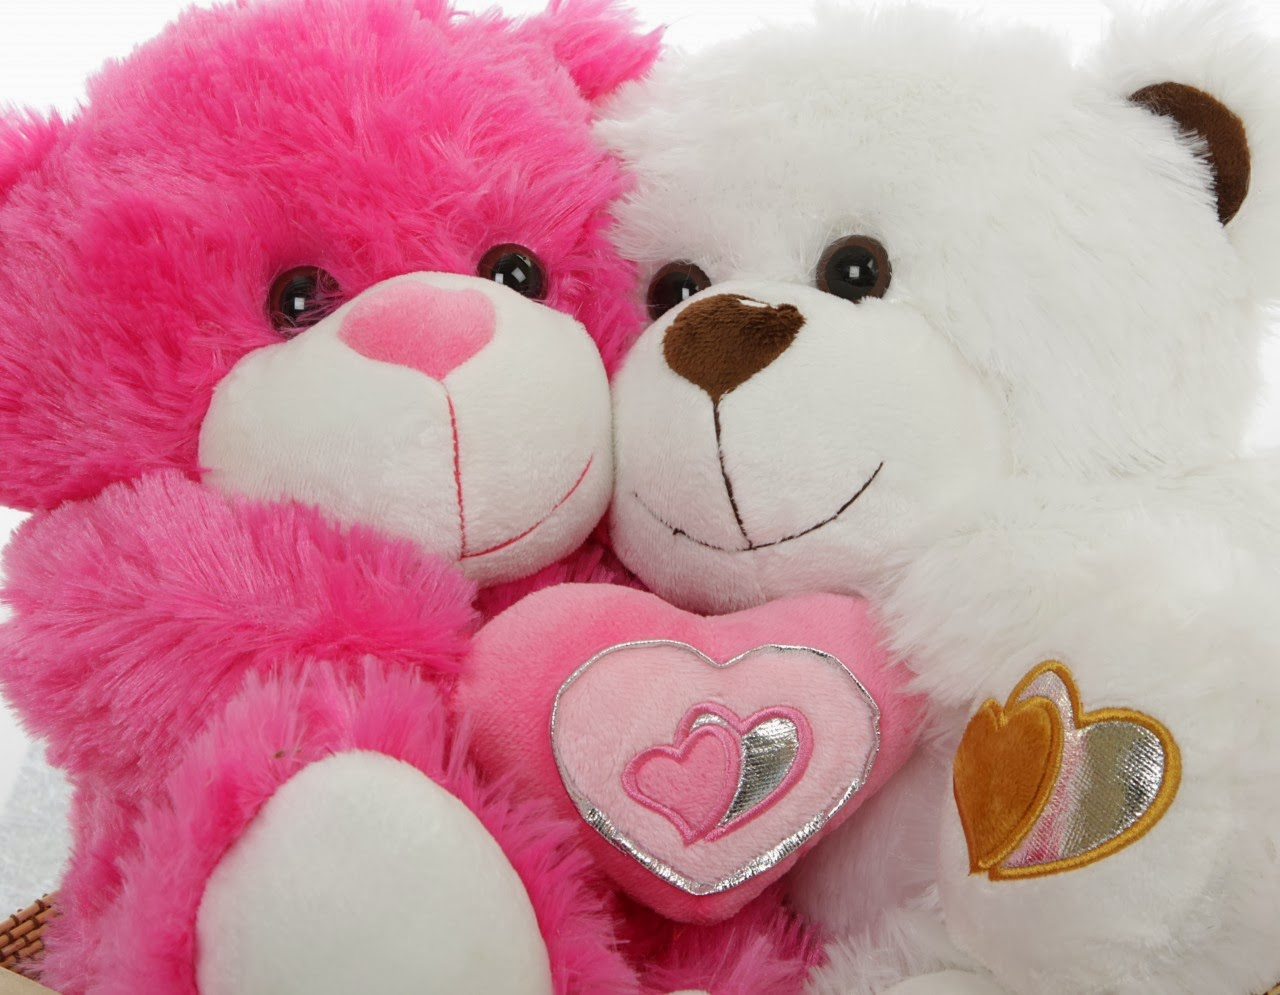 Teddy bear day gifts in Jodhpur